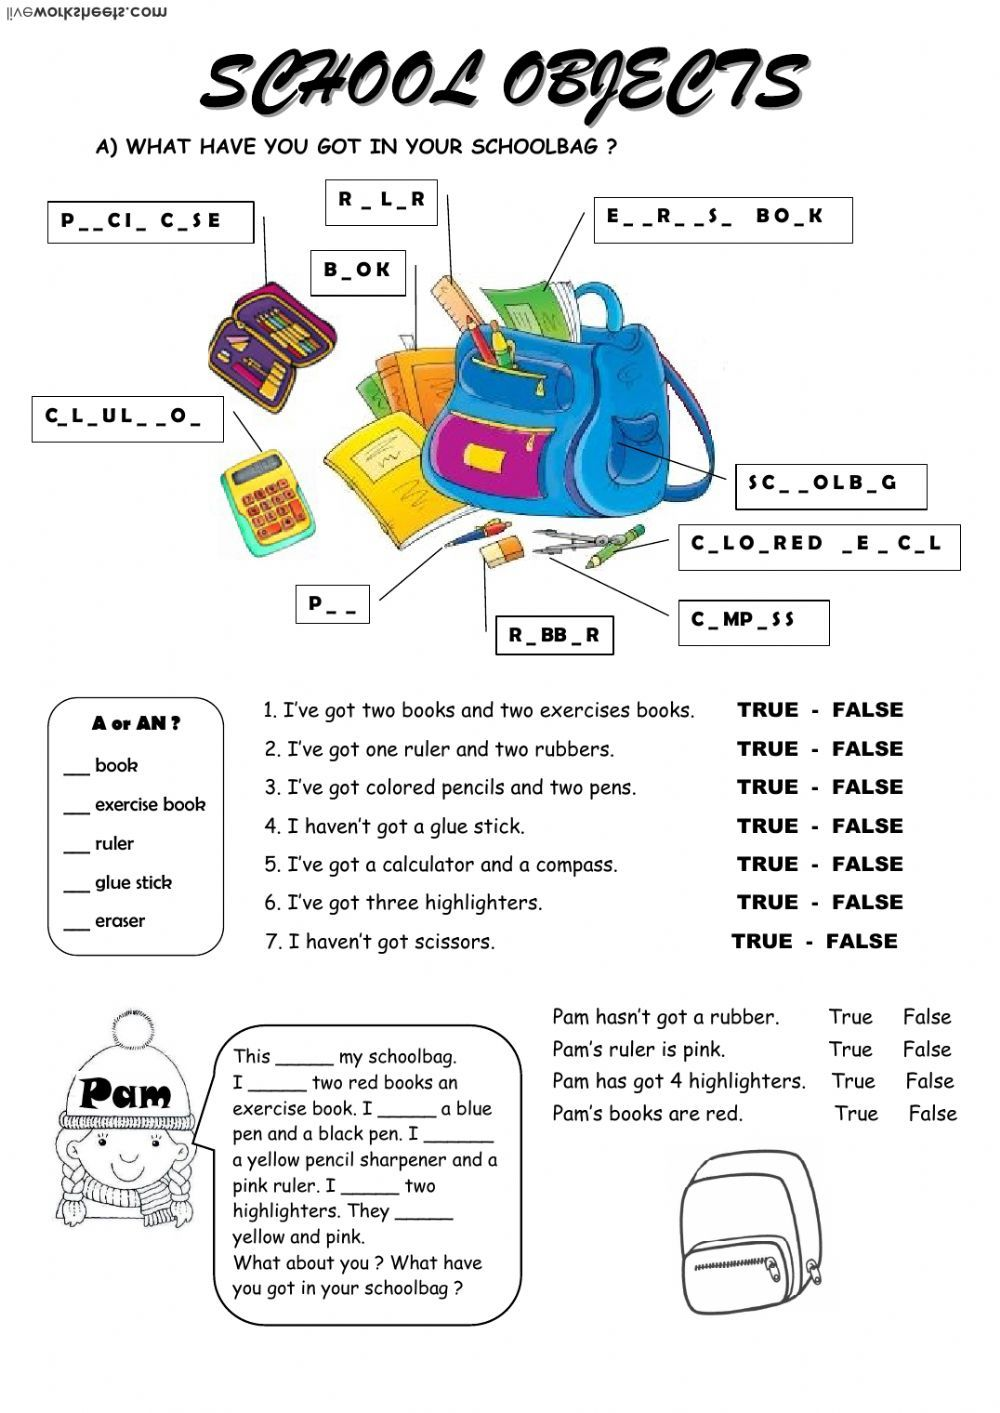 school objects interactive and downloadable worksheet. You